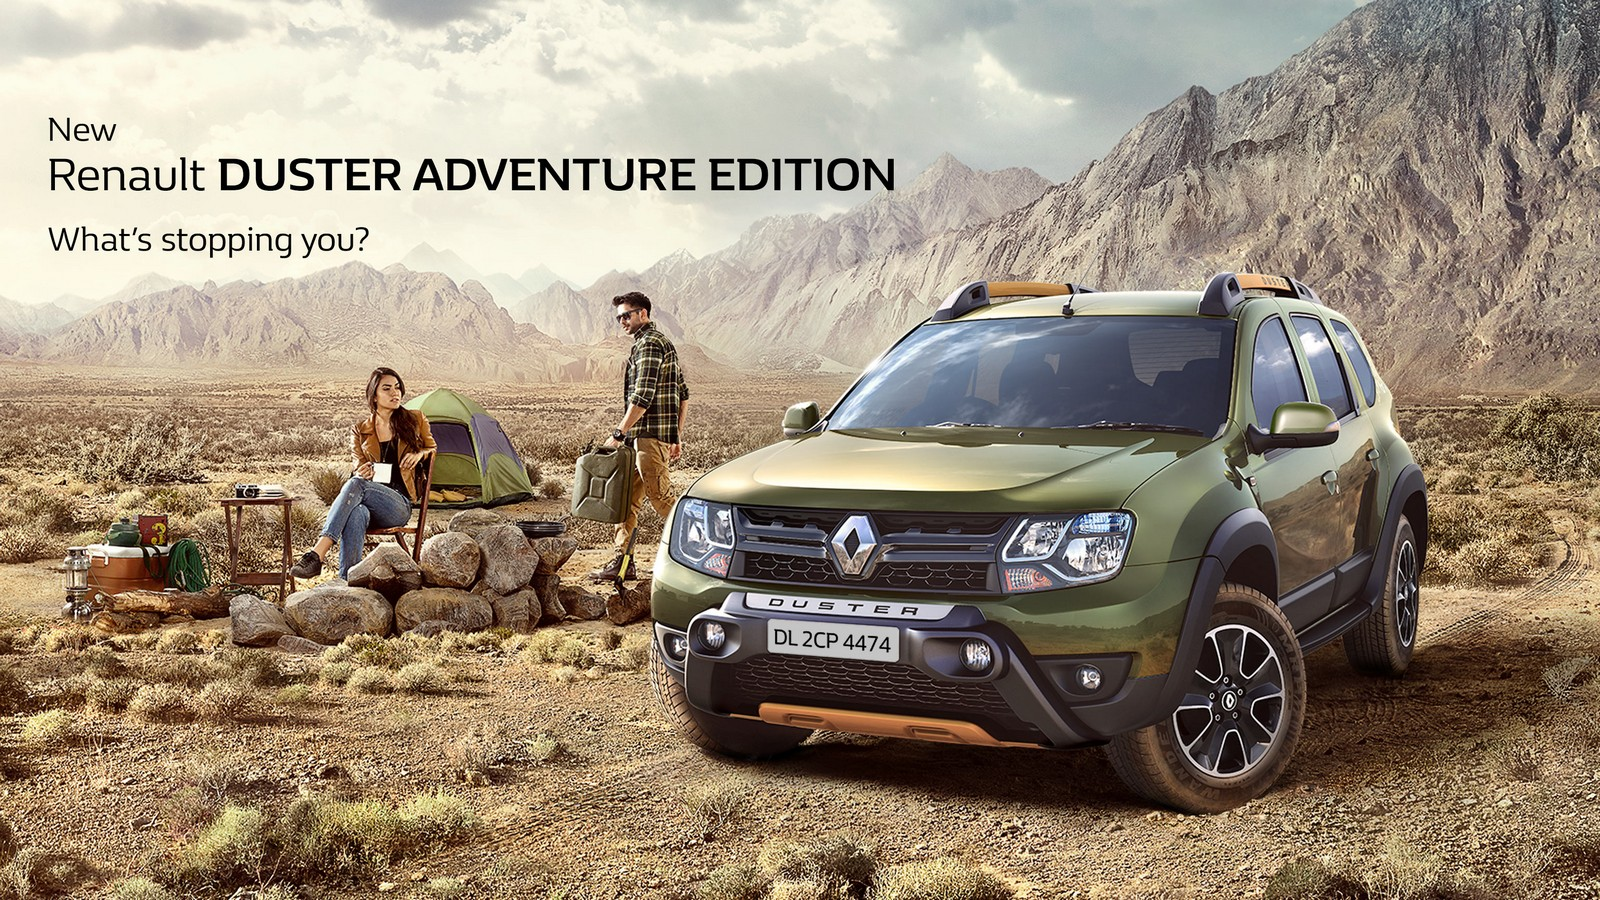 renault-duster-adventure-edition-1